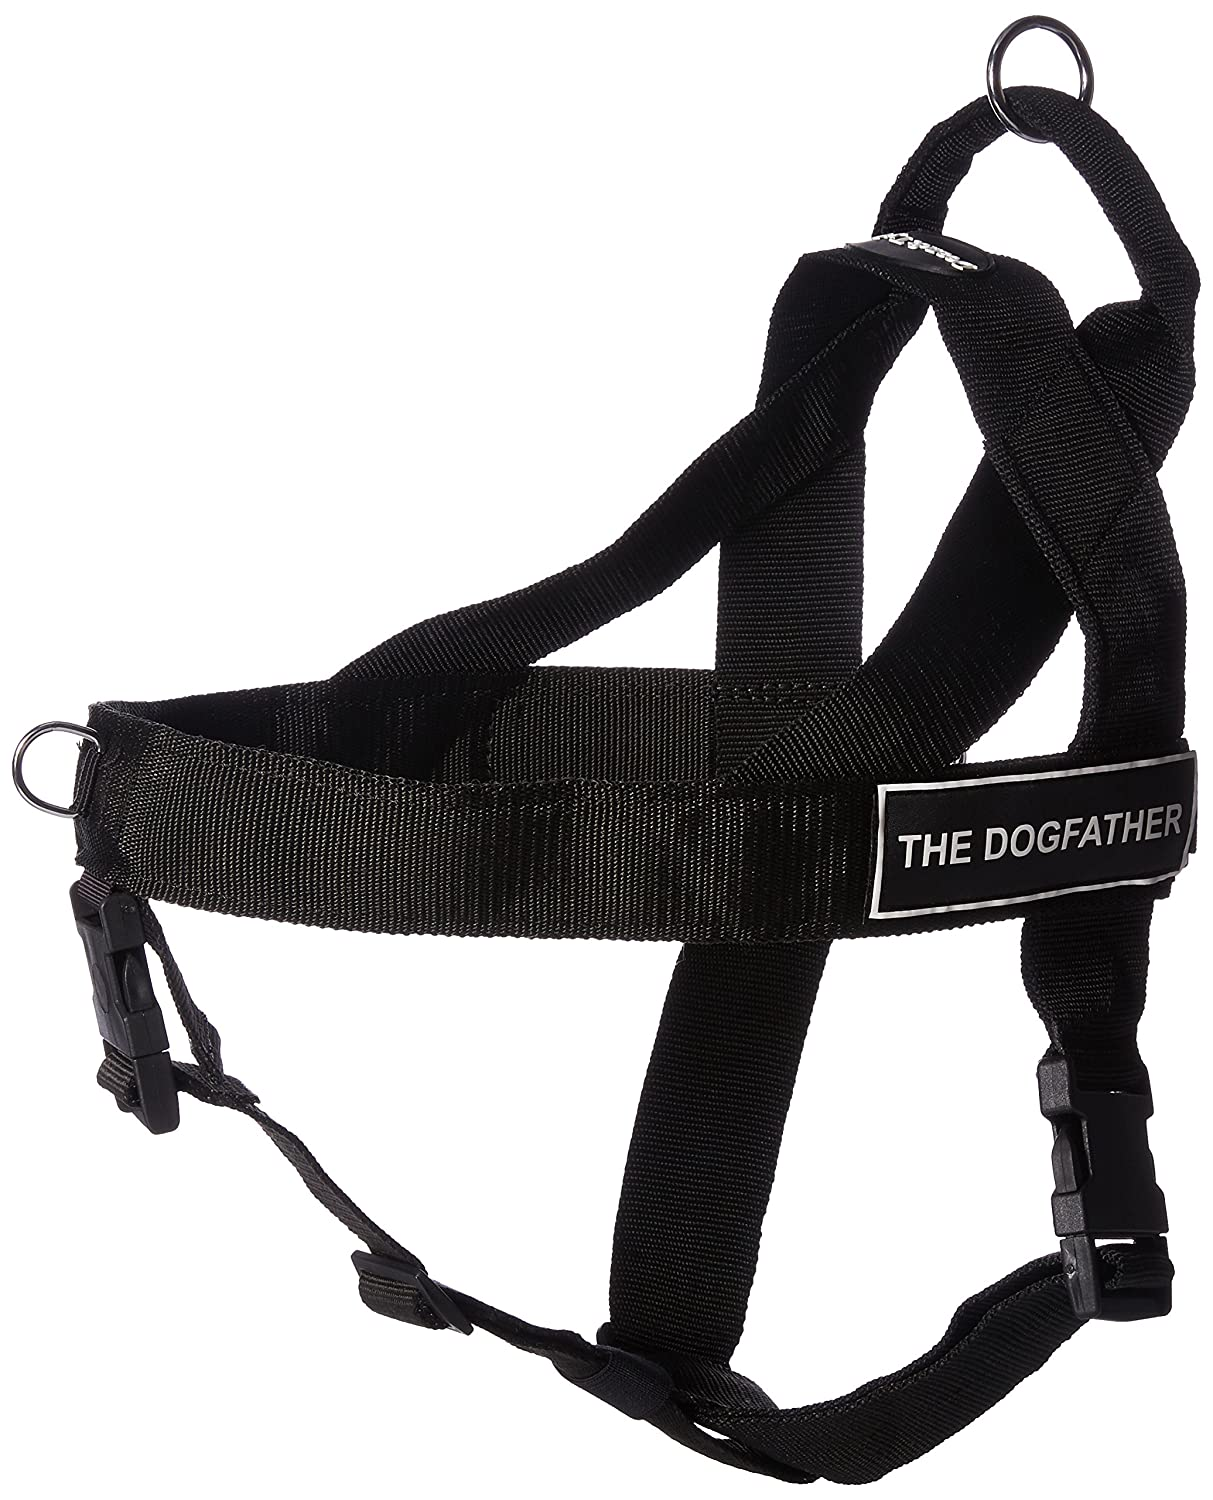 DT Universal Fun No Pull Dog Harness, The Dogfather, Black, X-Large, Fits Girth Size  36-Inch to 47-Inch